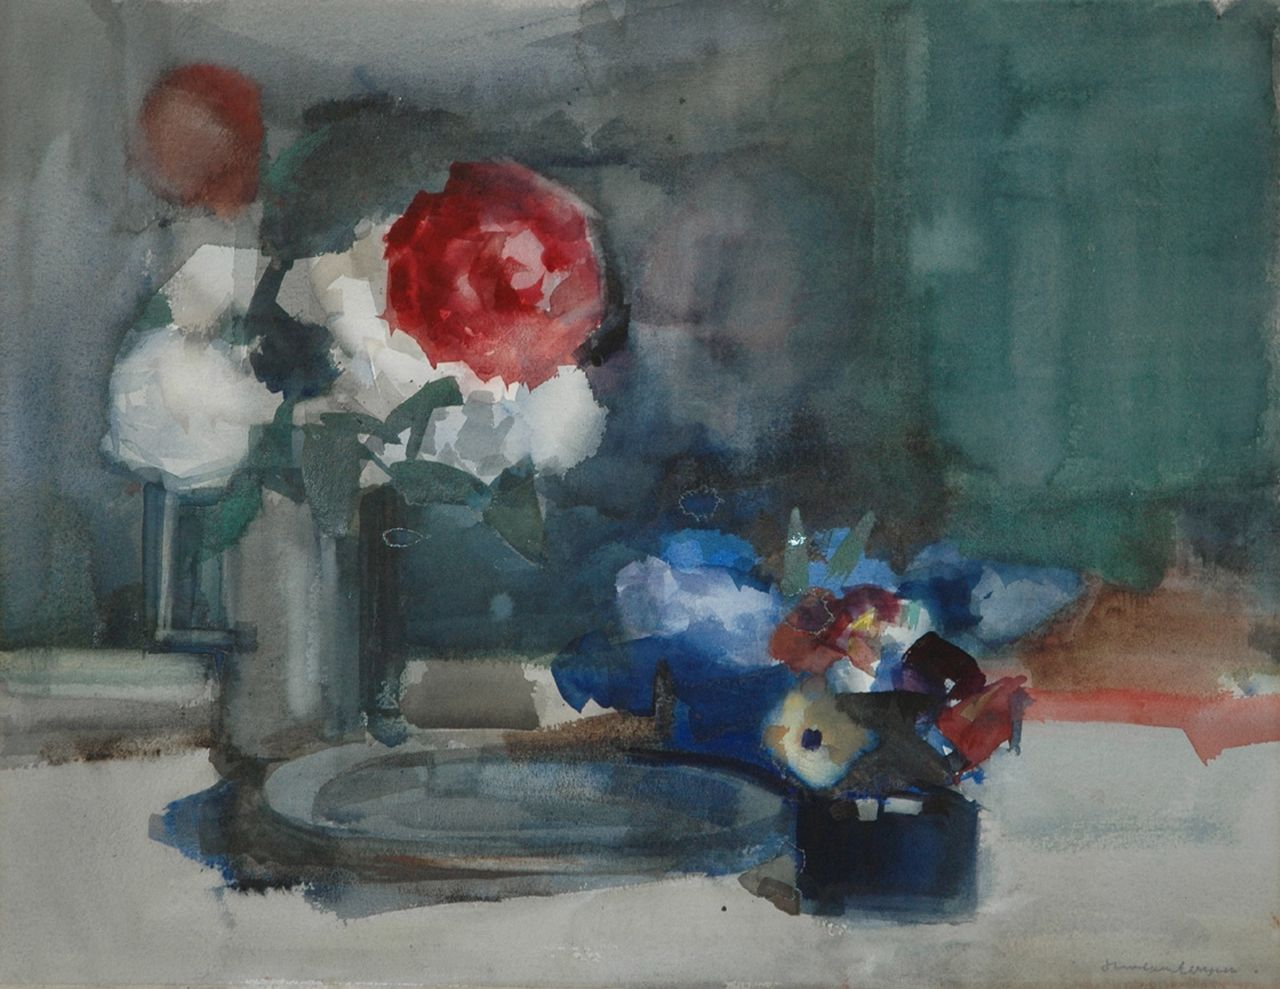 Hans van Ieperen | Flower still life, watercolour on paper, 46.0 x 58.7 cm, signed l.r.